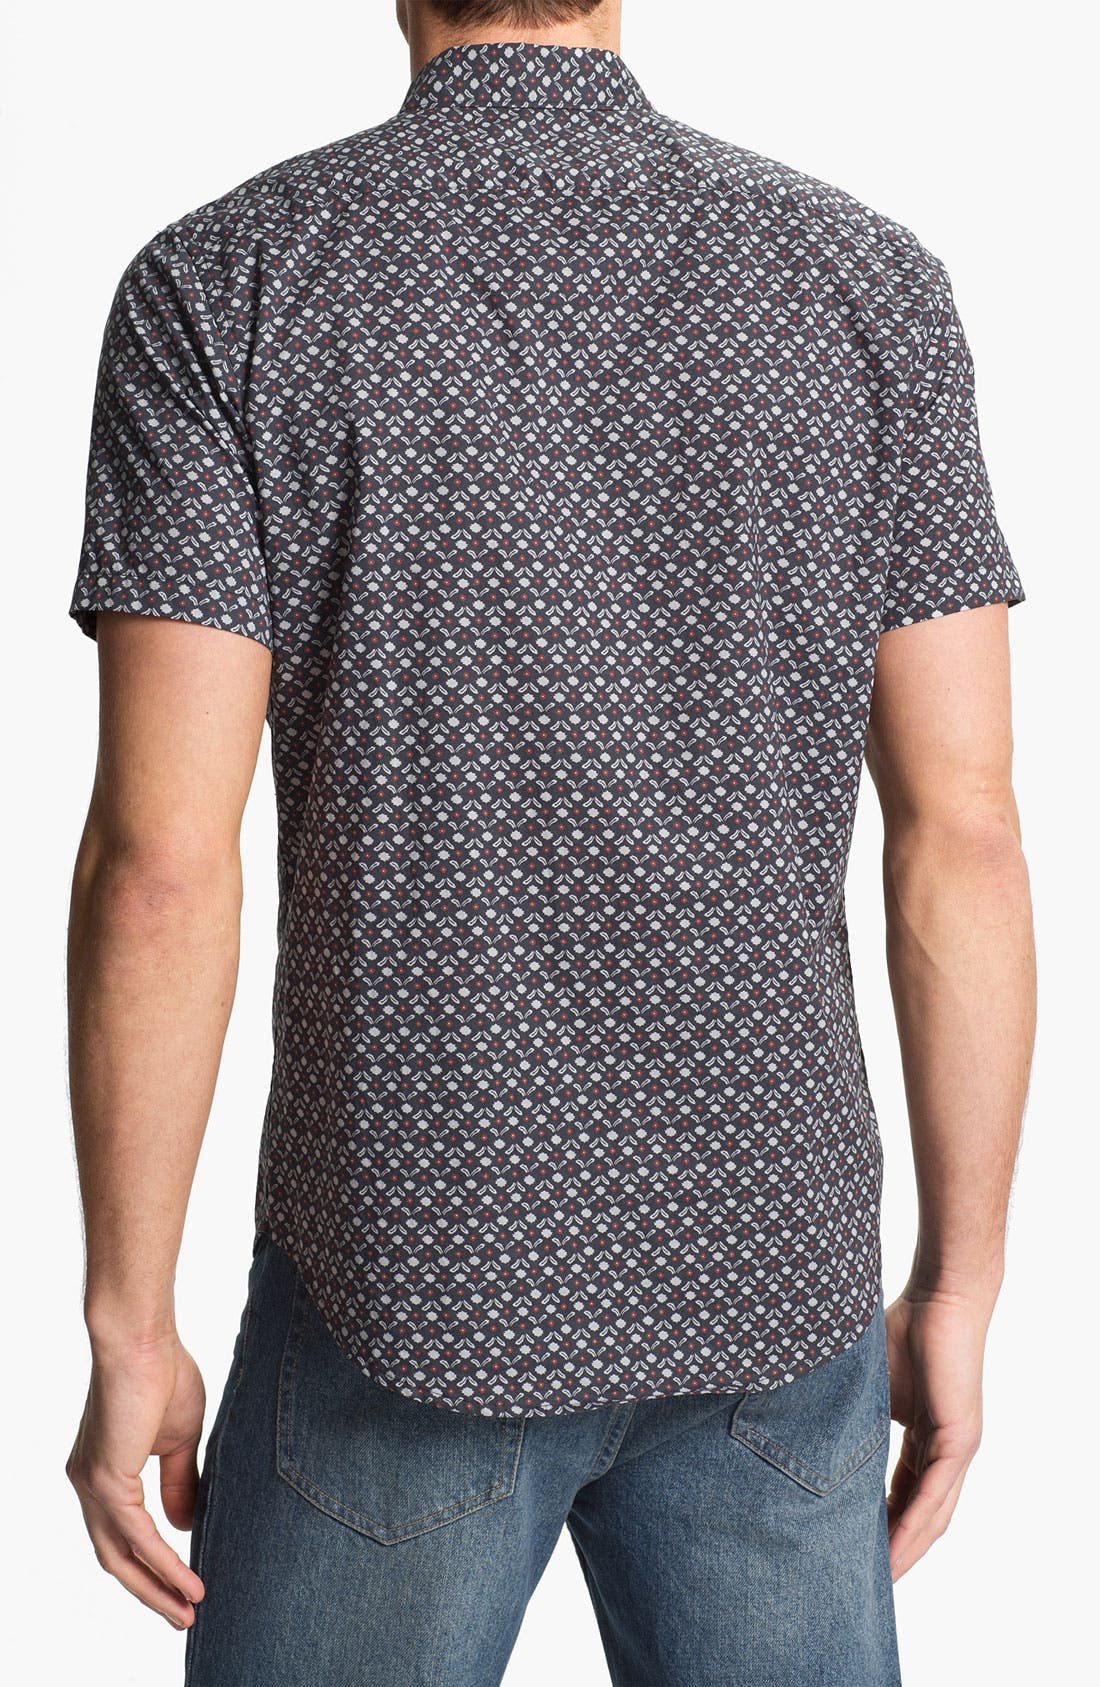 Alternate Image 2  - RVCA 'Dimensions' Print Woven Shirt